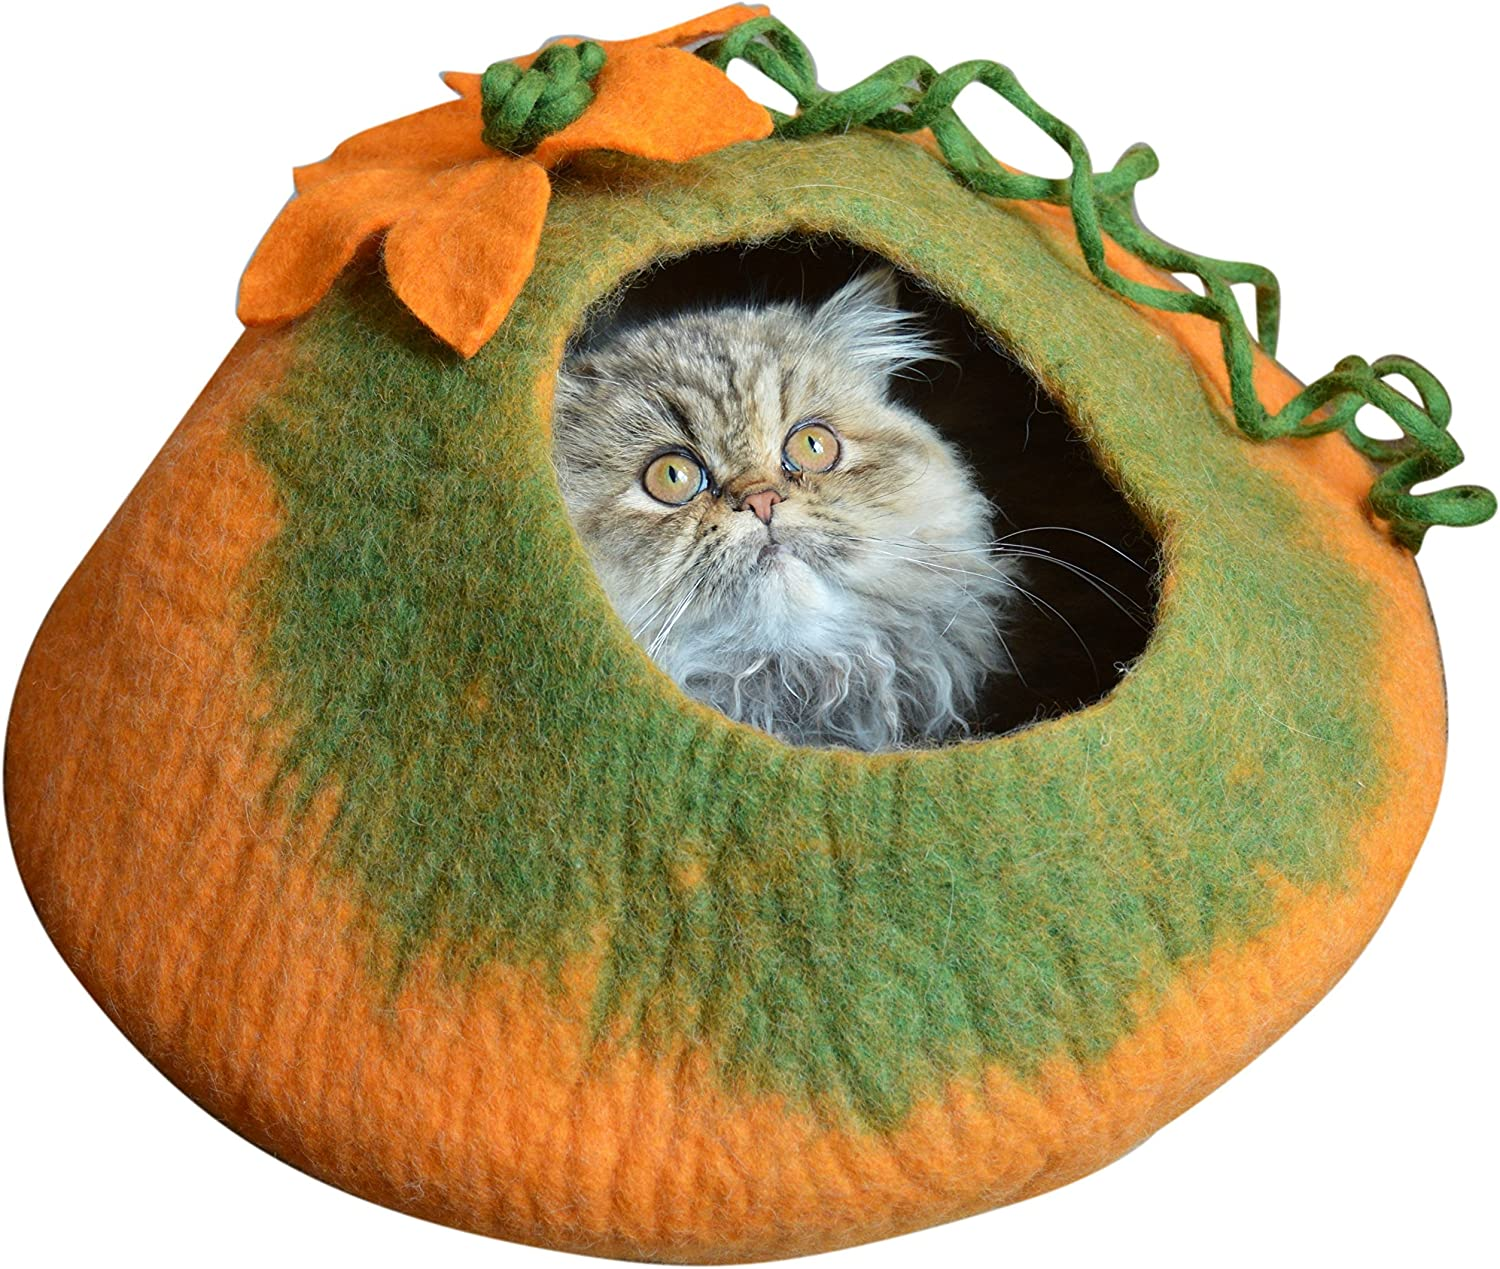 Best Cat Cave Bed, Unique Handmade Natural Felted Merino Wool, Large Covered and Cozy, Also Perfect for Kittens, Includes Bonus Catnip, Original Cat Caves, By Earthtone Solutions (Radiant Realm)